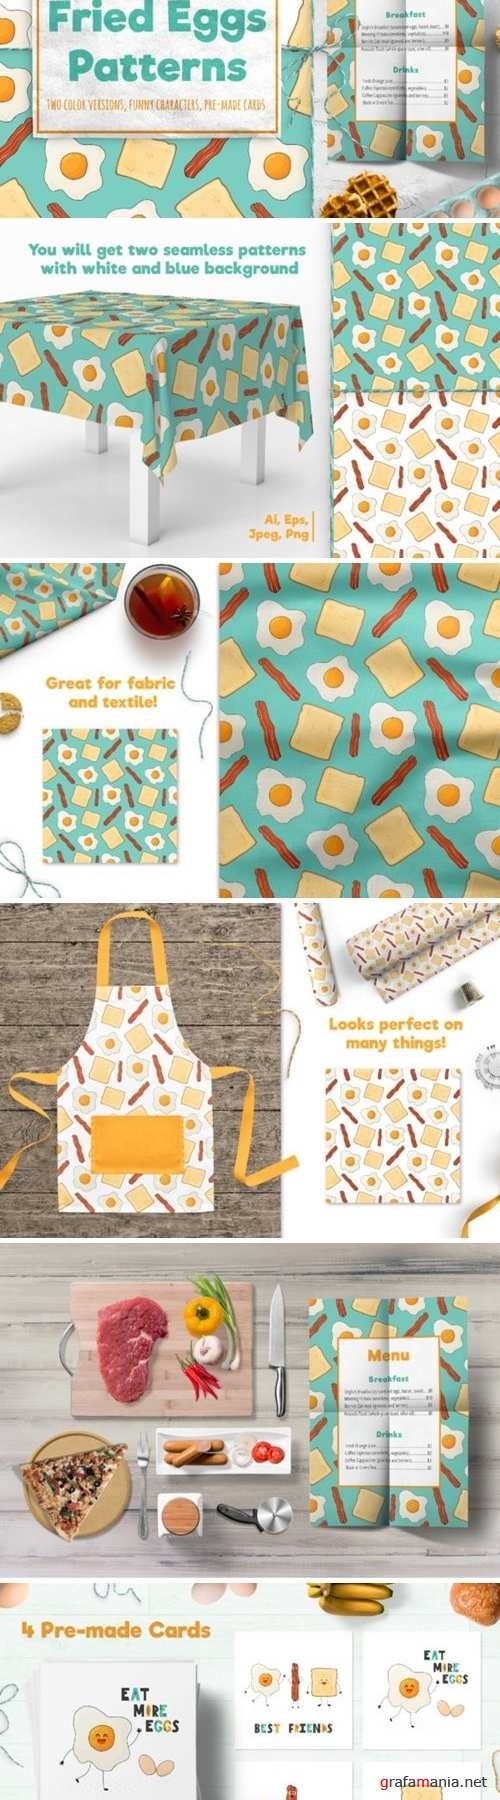 Fried Eggs Patterns - 4180721